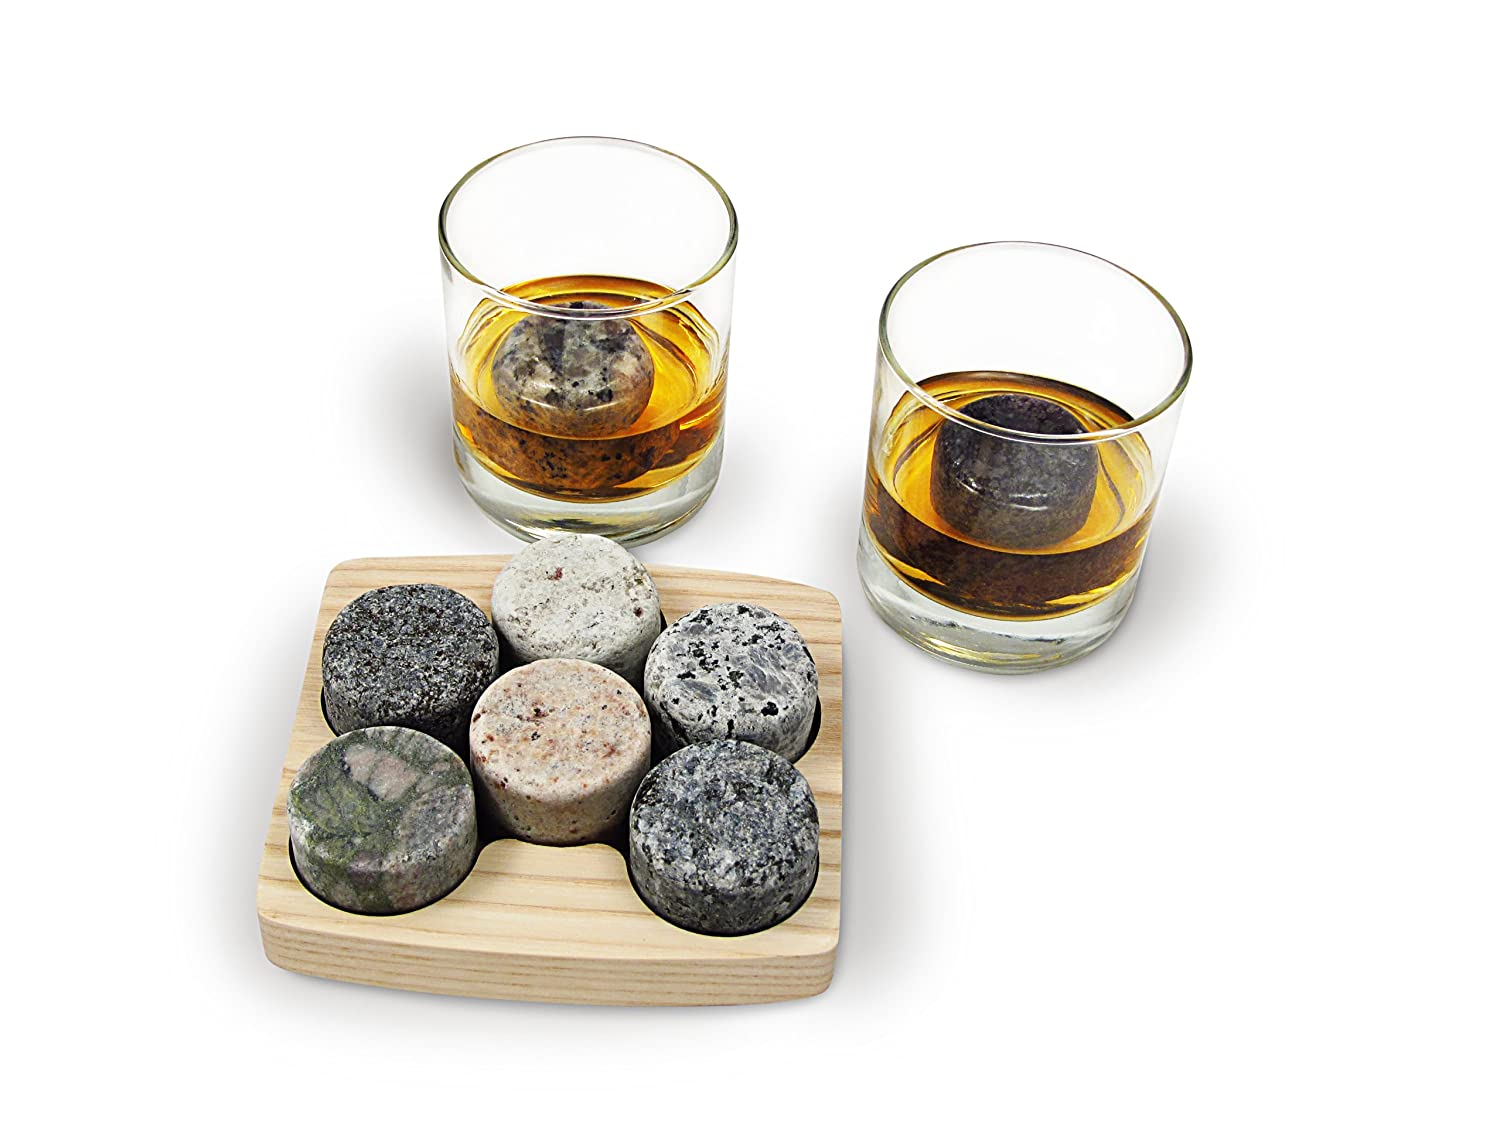 Sea Stones On the Rocks Granite 6-Piece Whiskey Chilling Stones Set with Two 10-Ounce Tumblers and Hardwood Presentation/Storage Tray OTR-T